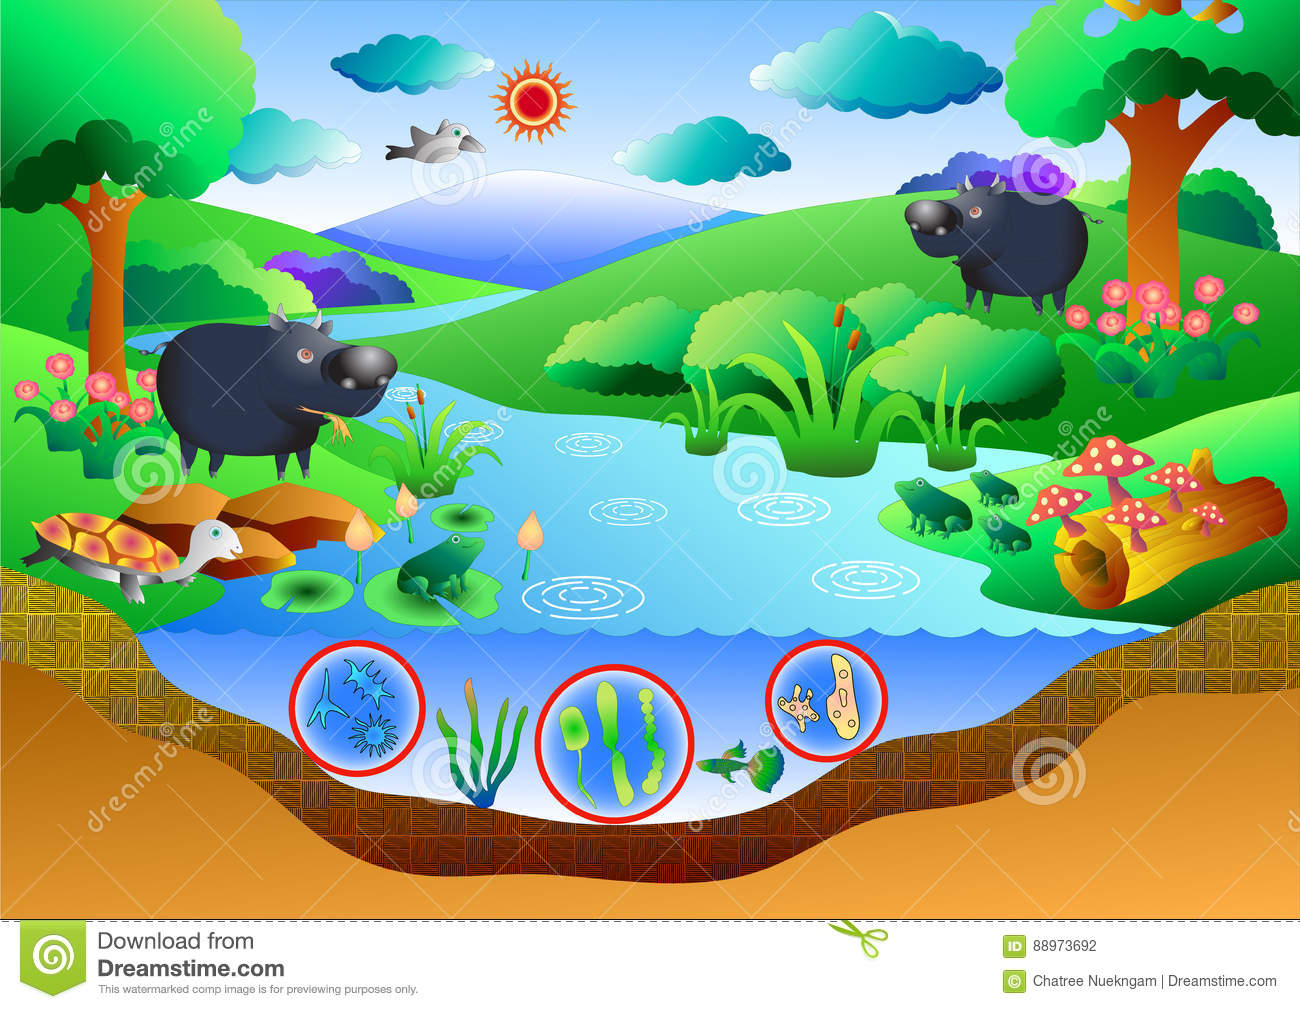 Ecosystem diagram stock vector illustration of ground 88973692 ecosystem diagram pooptronica Image collections